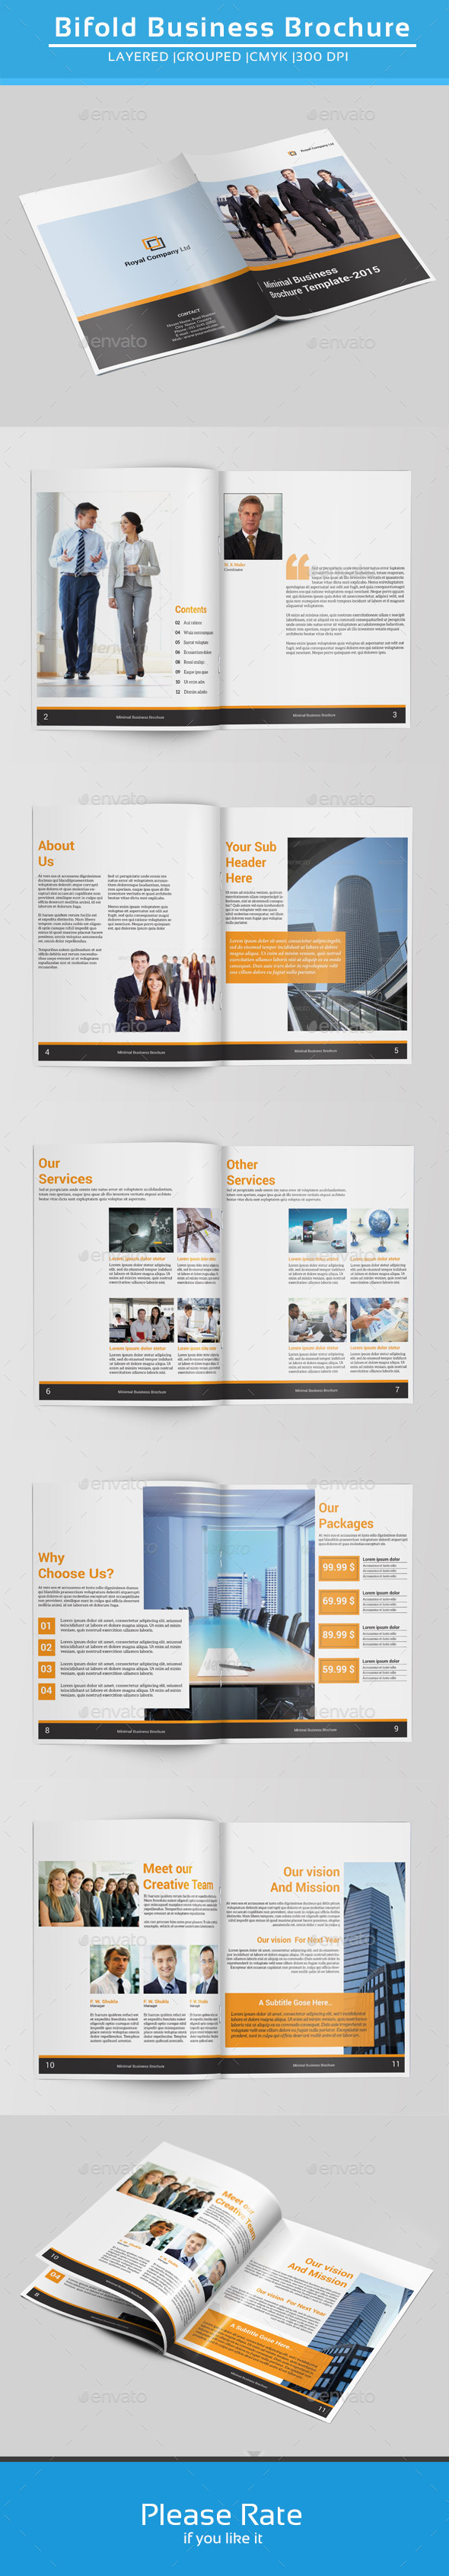 Indesign Business Brochure-V143 - Corporate Brochures